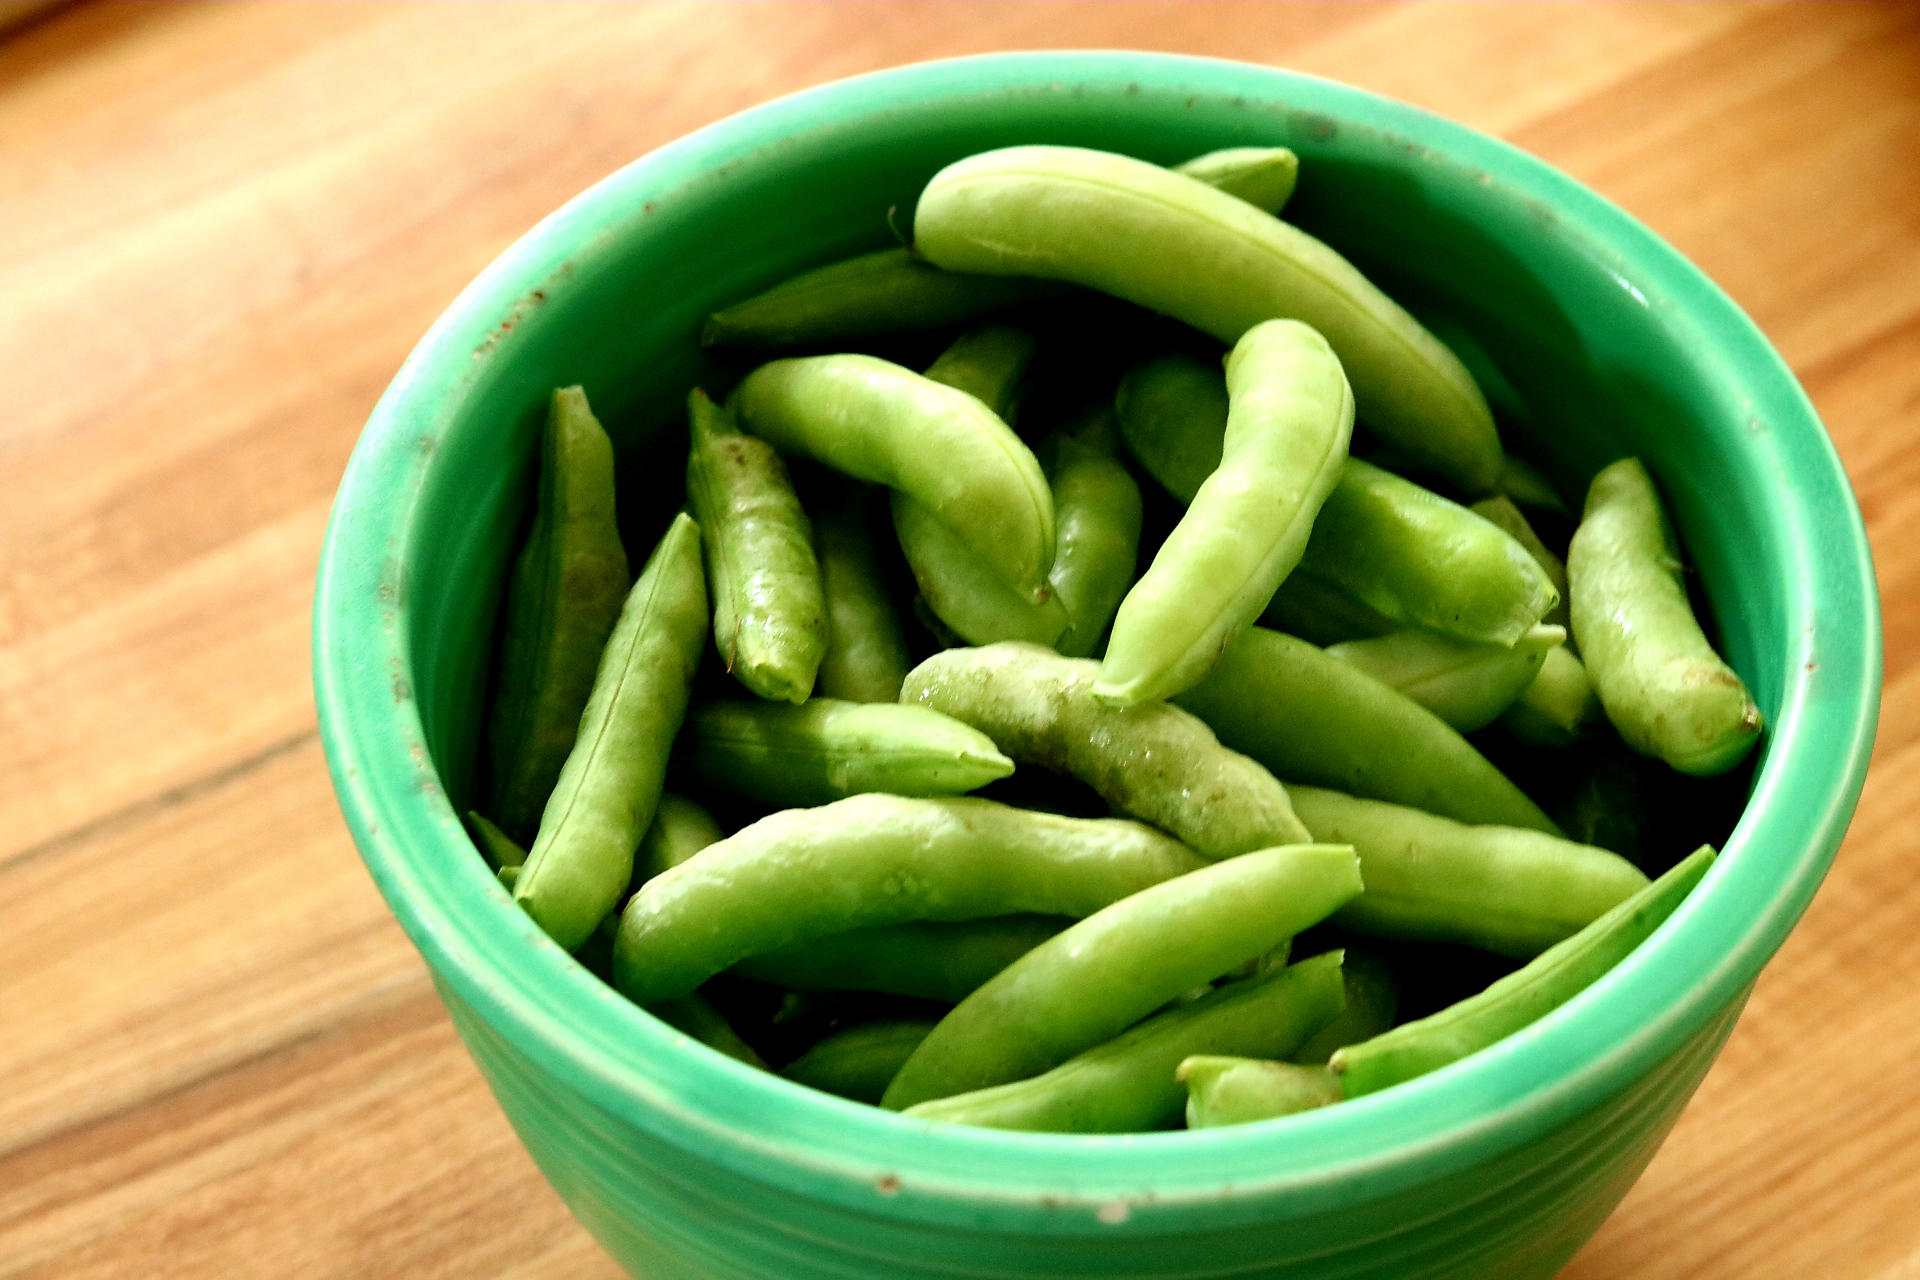 Minnesota Grown sugar snap peas from the New Hope Community Farmers Market, located near the Hyvee on 42nd Avenue. Open Saturdays from 8:00am to 12:30pm.